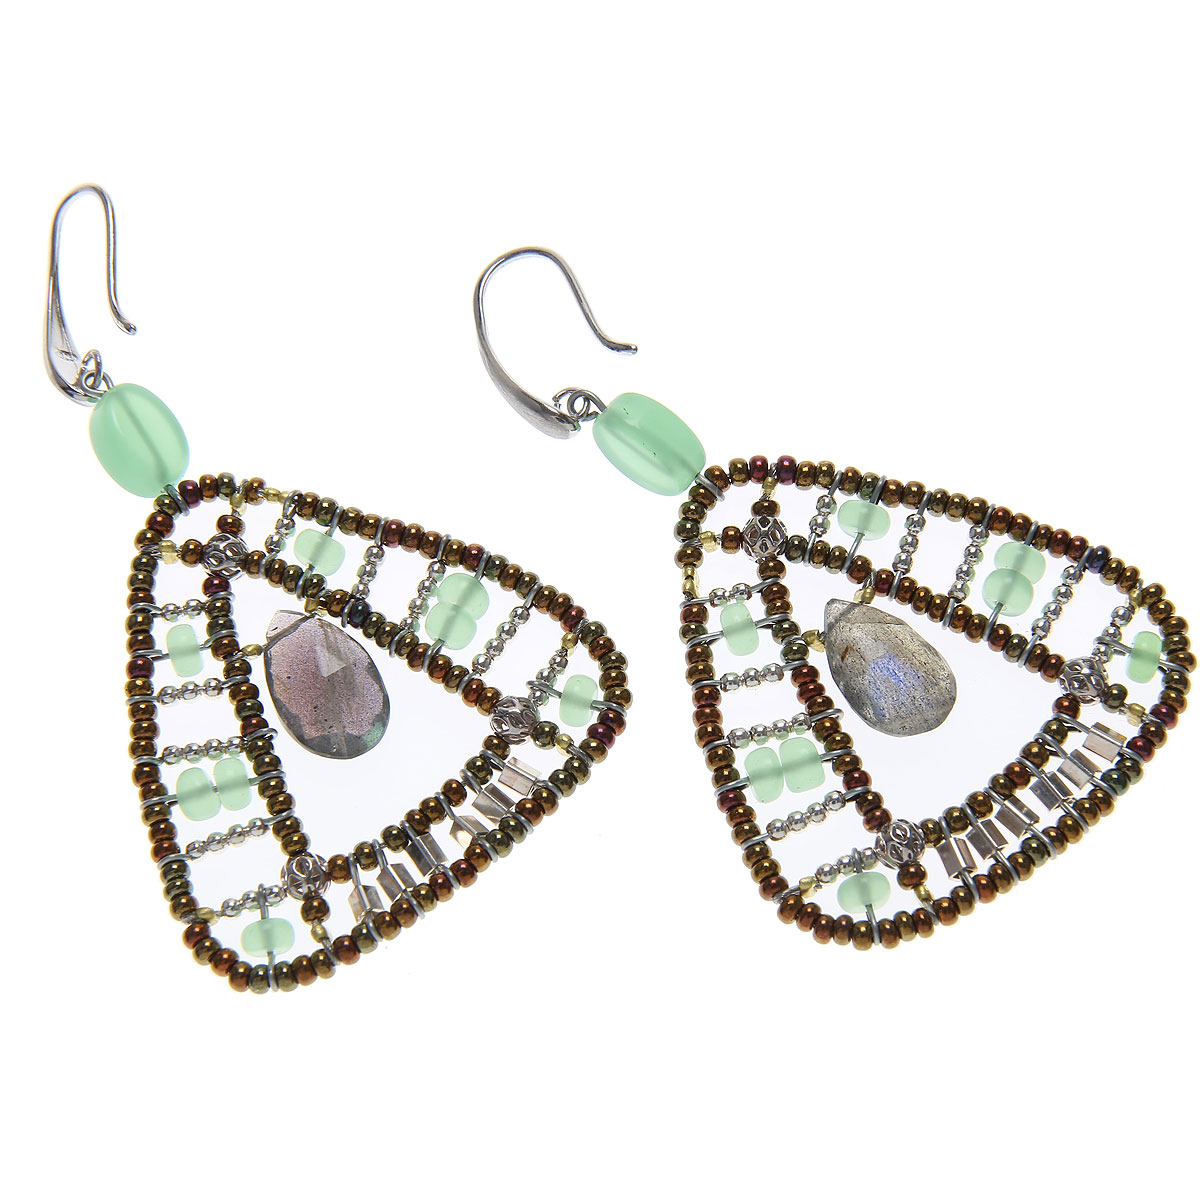 Ziio Jewellery Earrings for Women On Sale, Transparent Light Green, Chrysophrase Hydro, 2019